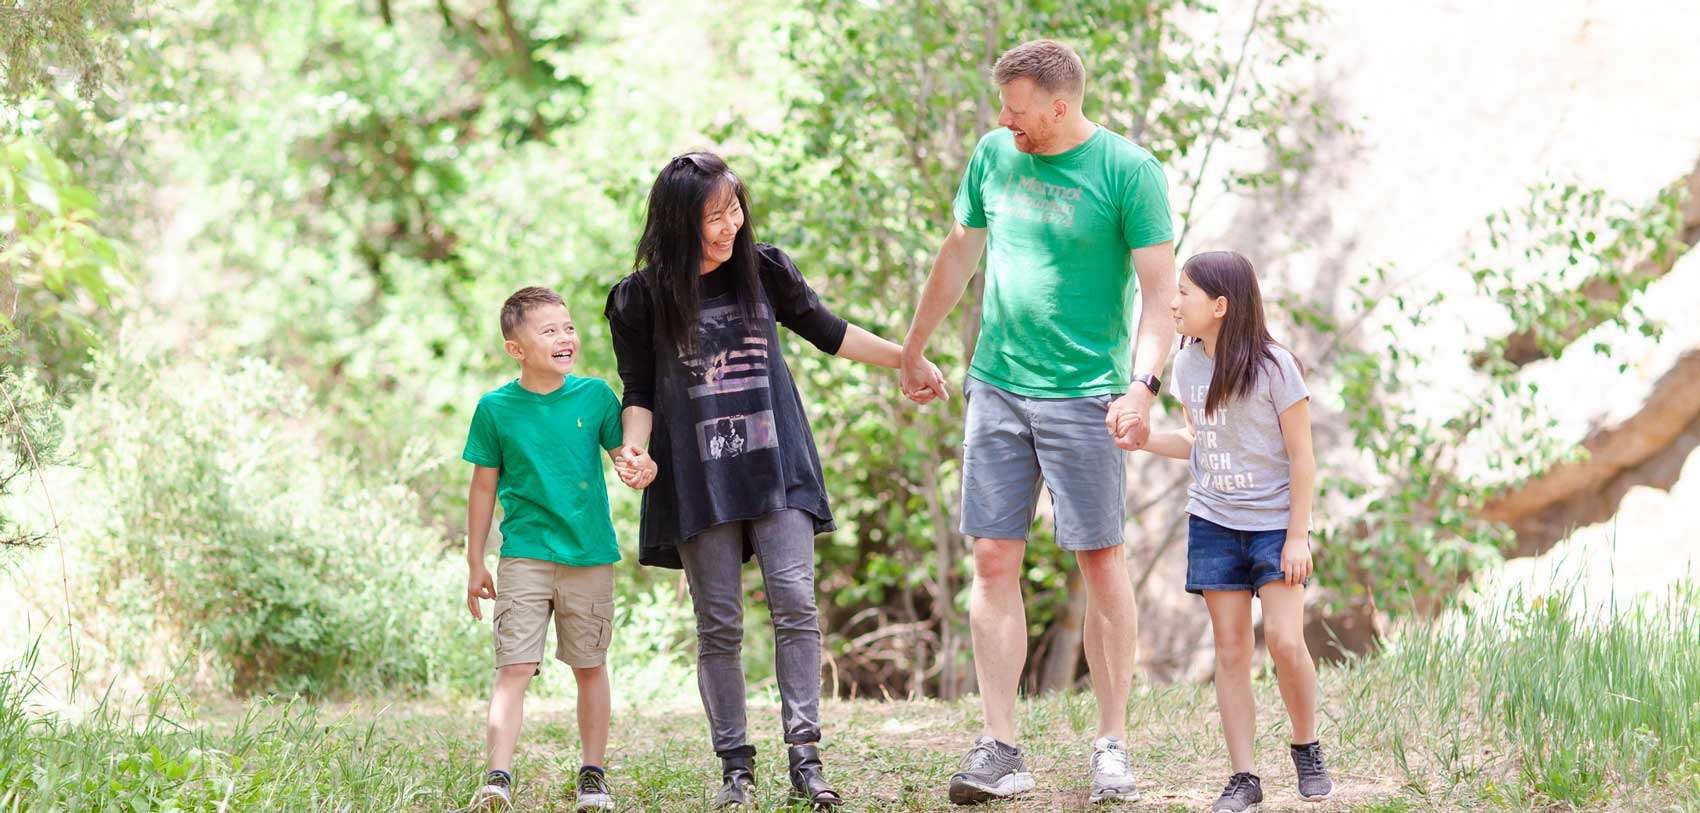 General Dentistry - Family walking together